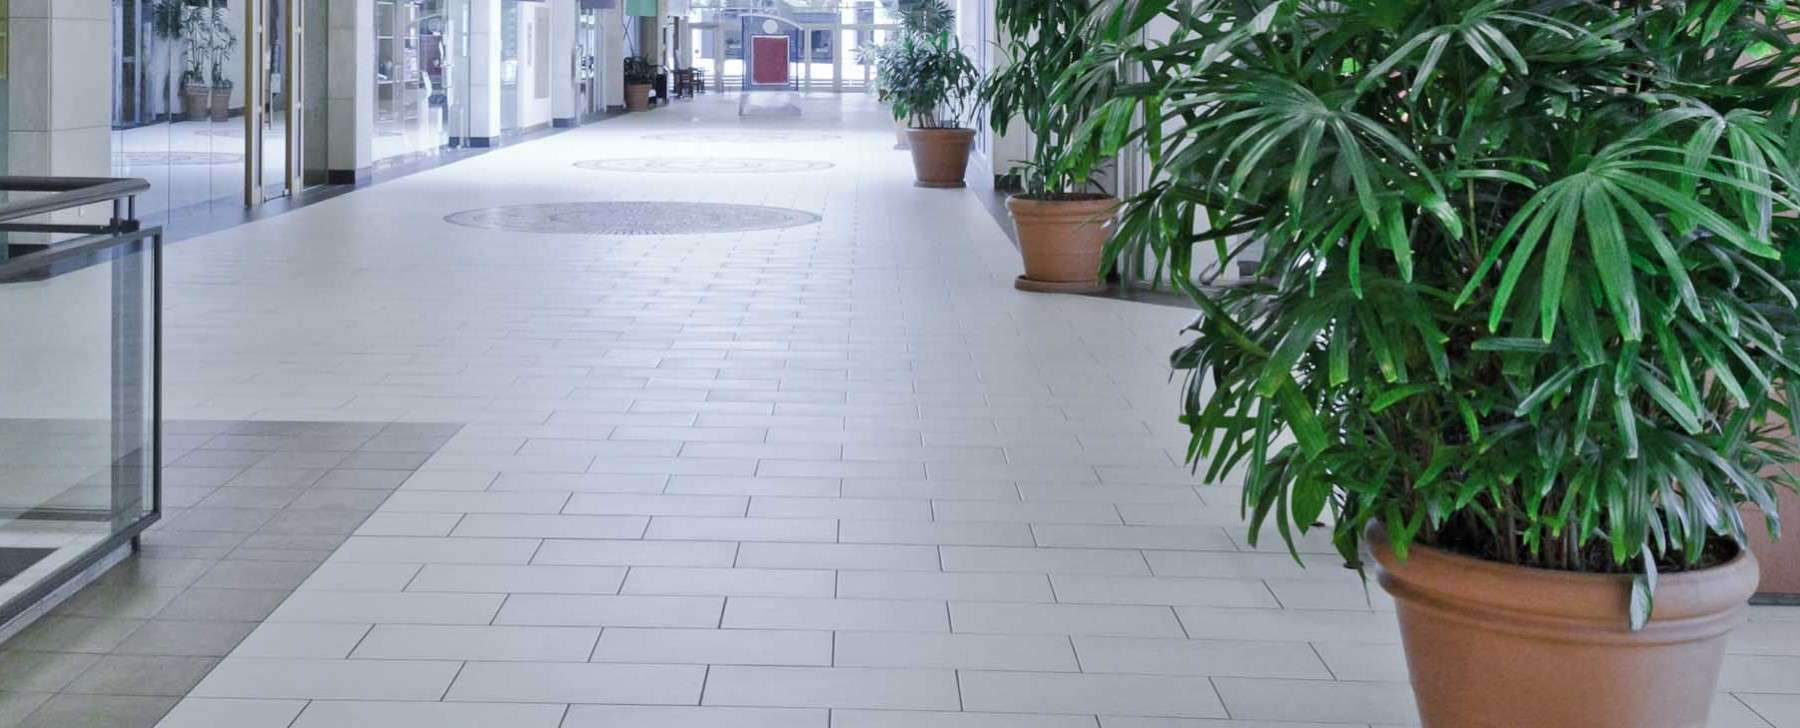 Supply and Installation of all tiles and stone | NV Global Tiling